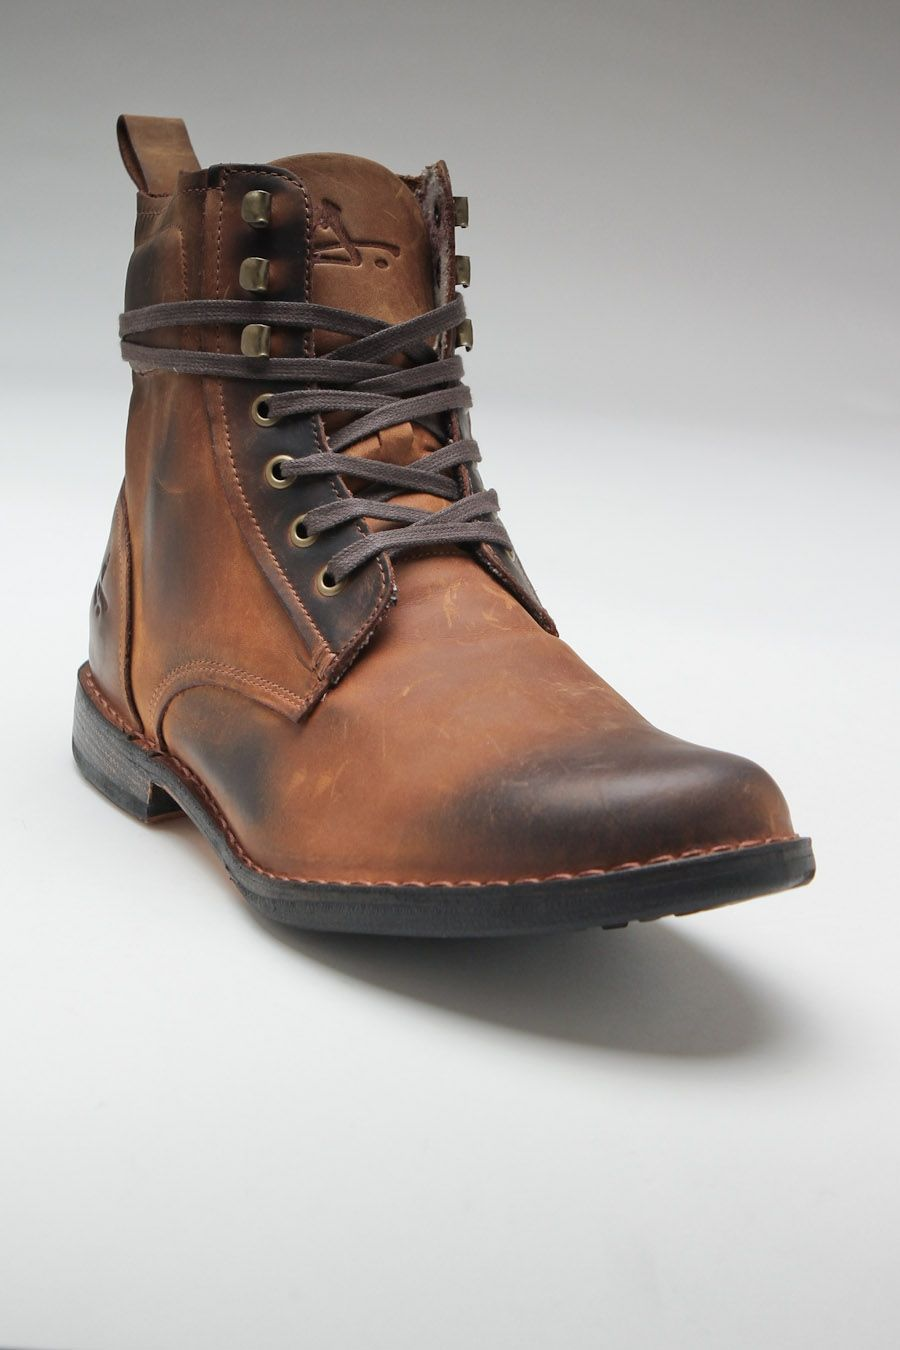 That S A Mean Boot Rugged